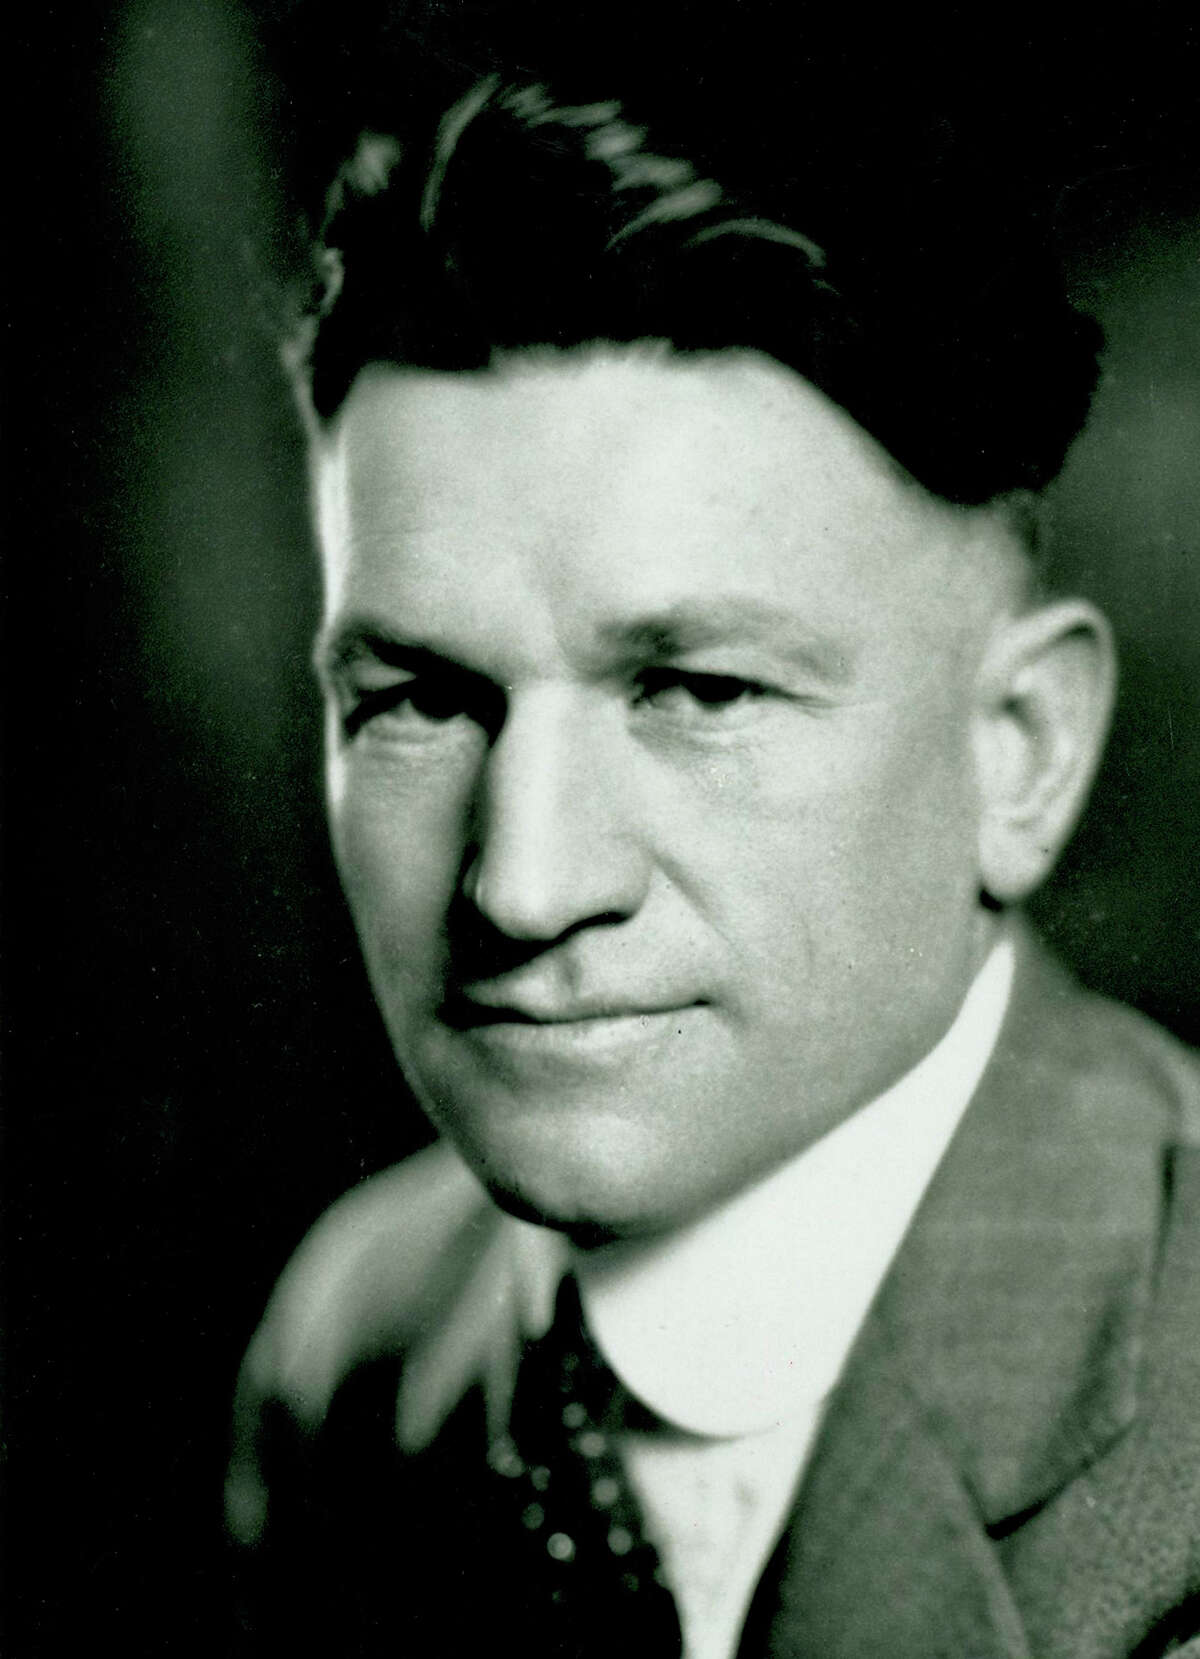 A youthful Howard E. Butt Sr. in a photo taken in 1935.